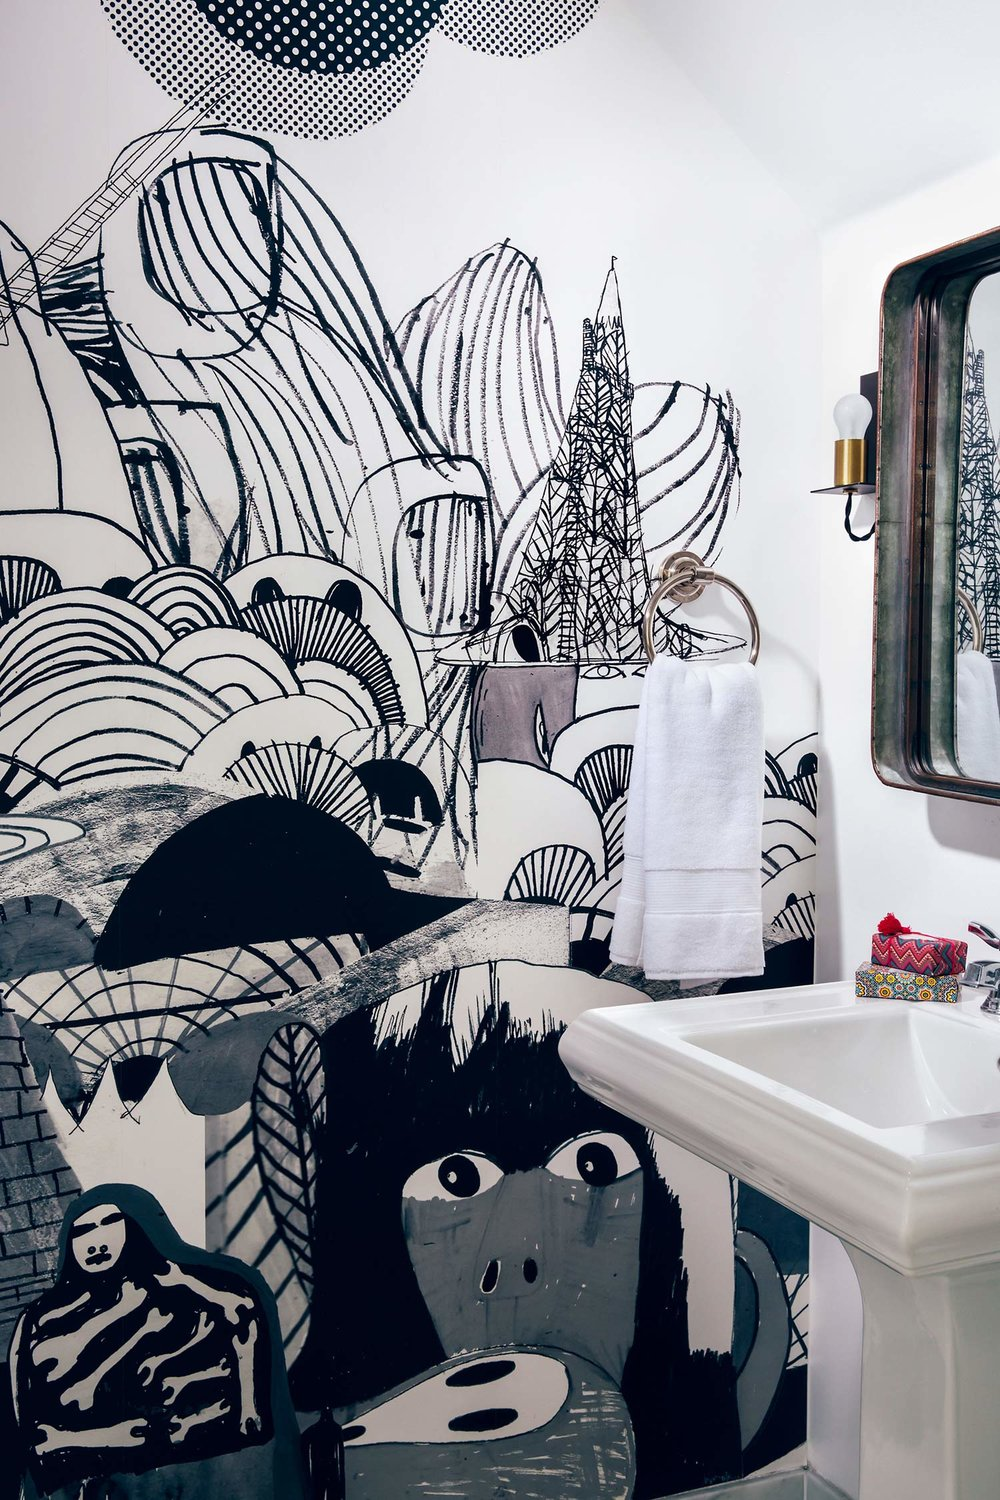 WHAT'S BLACK AND WHITE AND COOL ALL OVER?  A floor-to-ceiling graphic mural from Paris transformed this unassuming powder room.